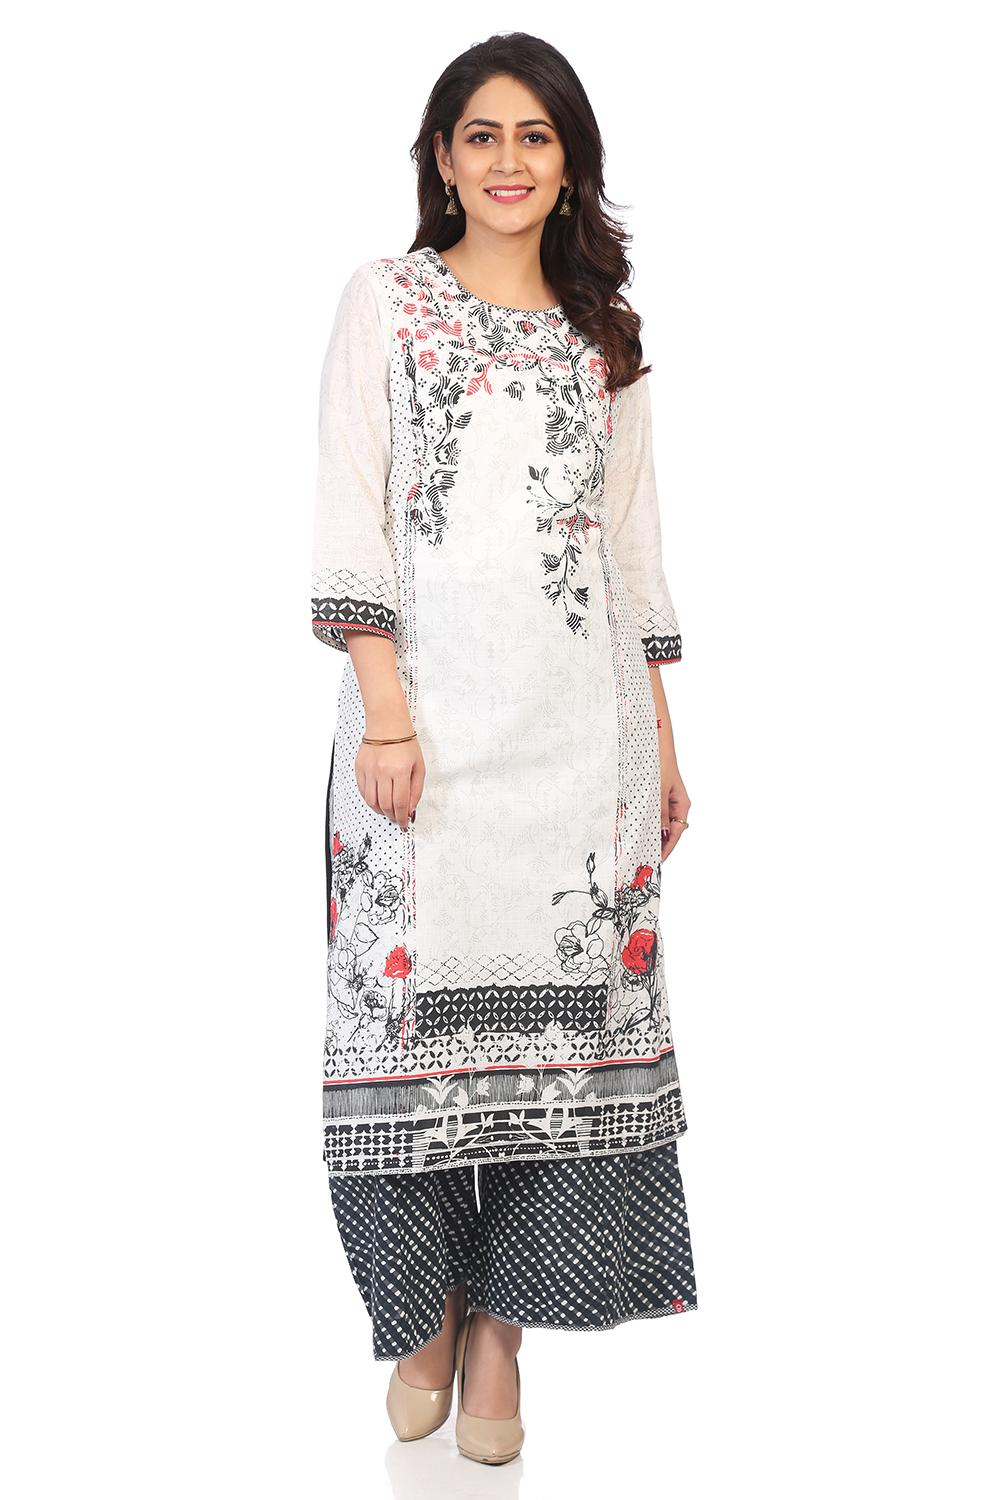 White & Black Straight Cotton Kurta - INTOTHE13533